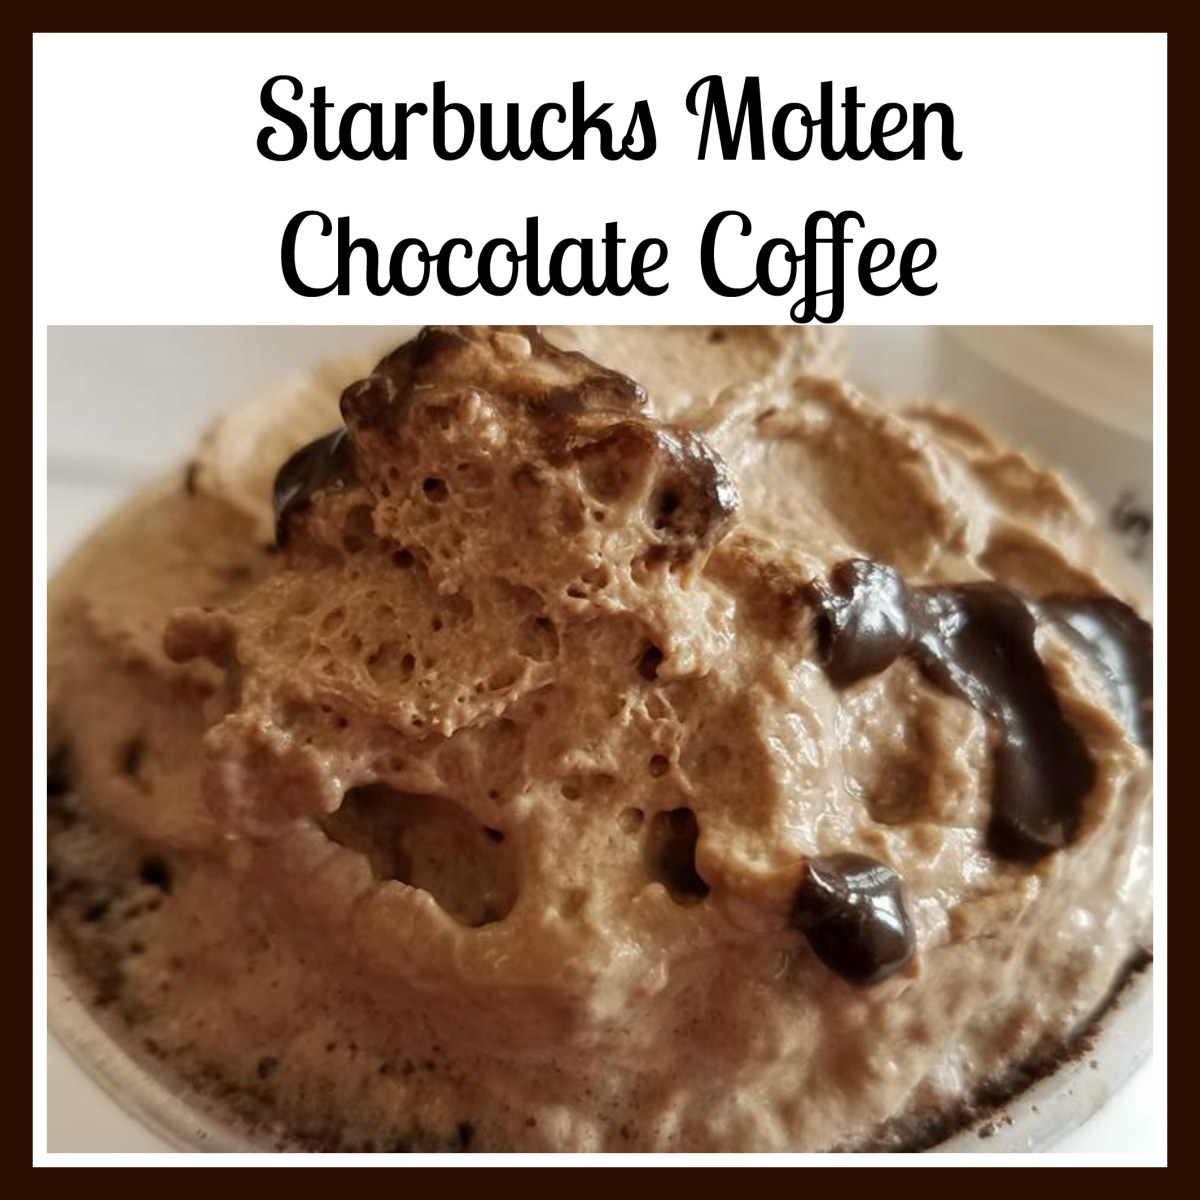 Starbucks Molten Chocolate Coffee